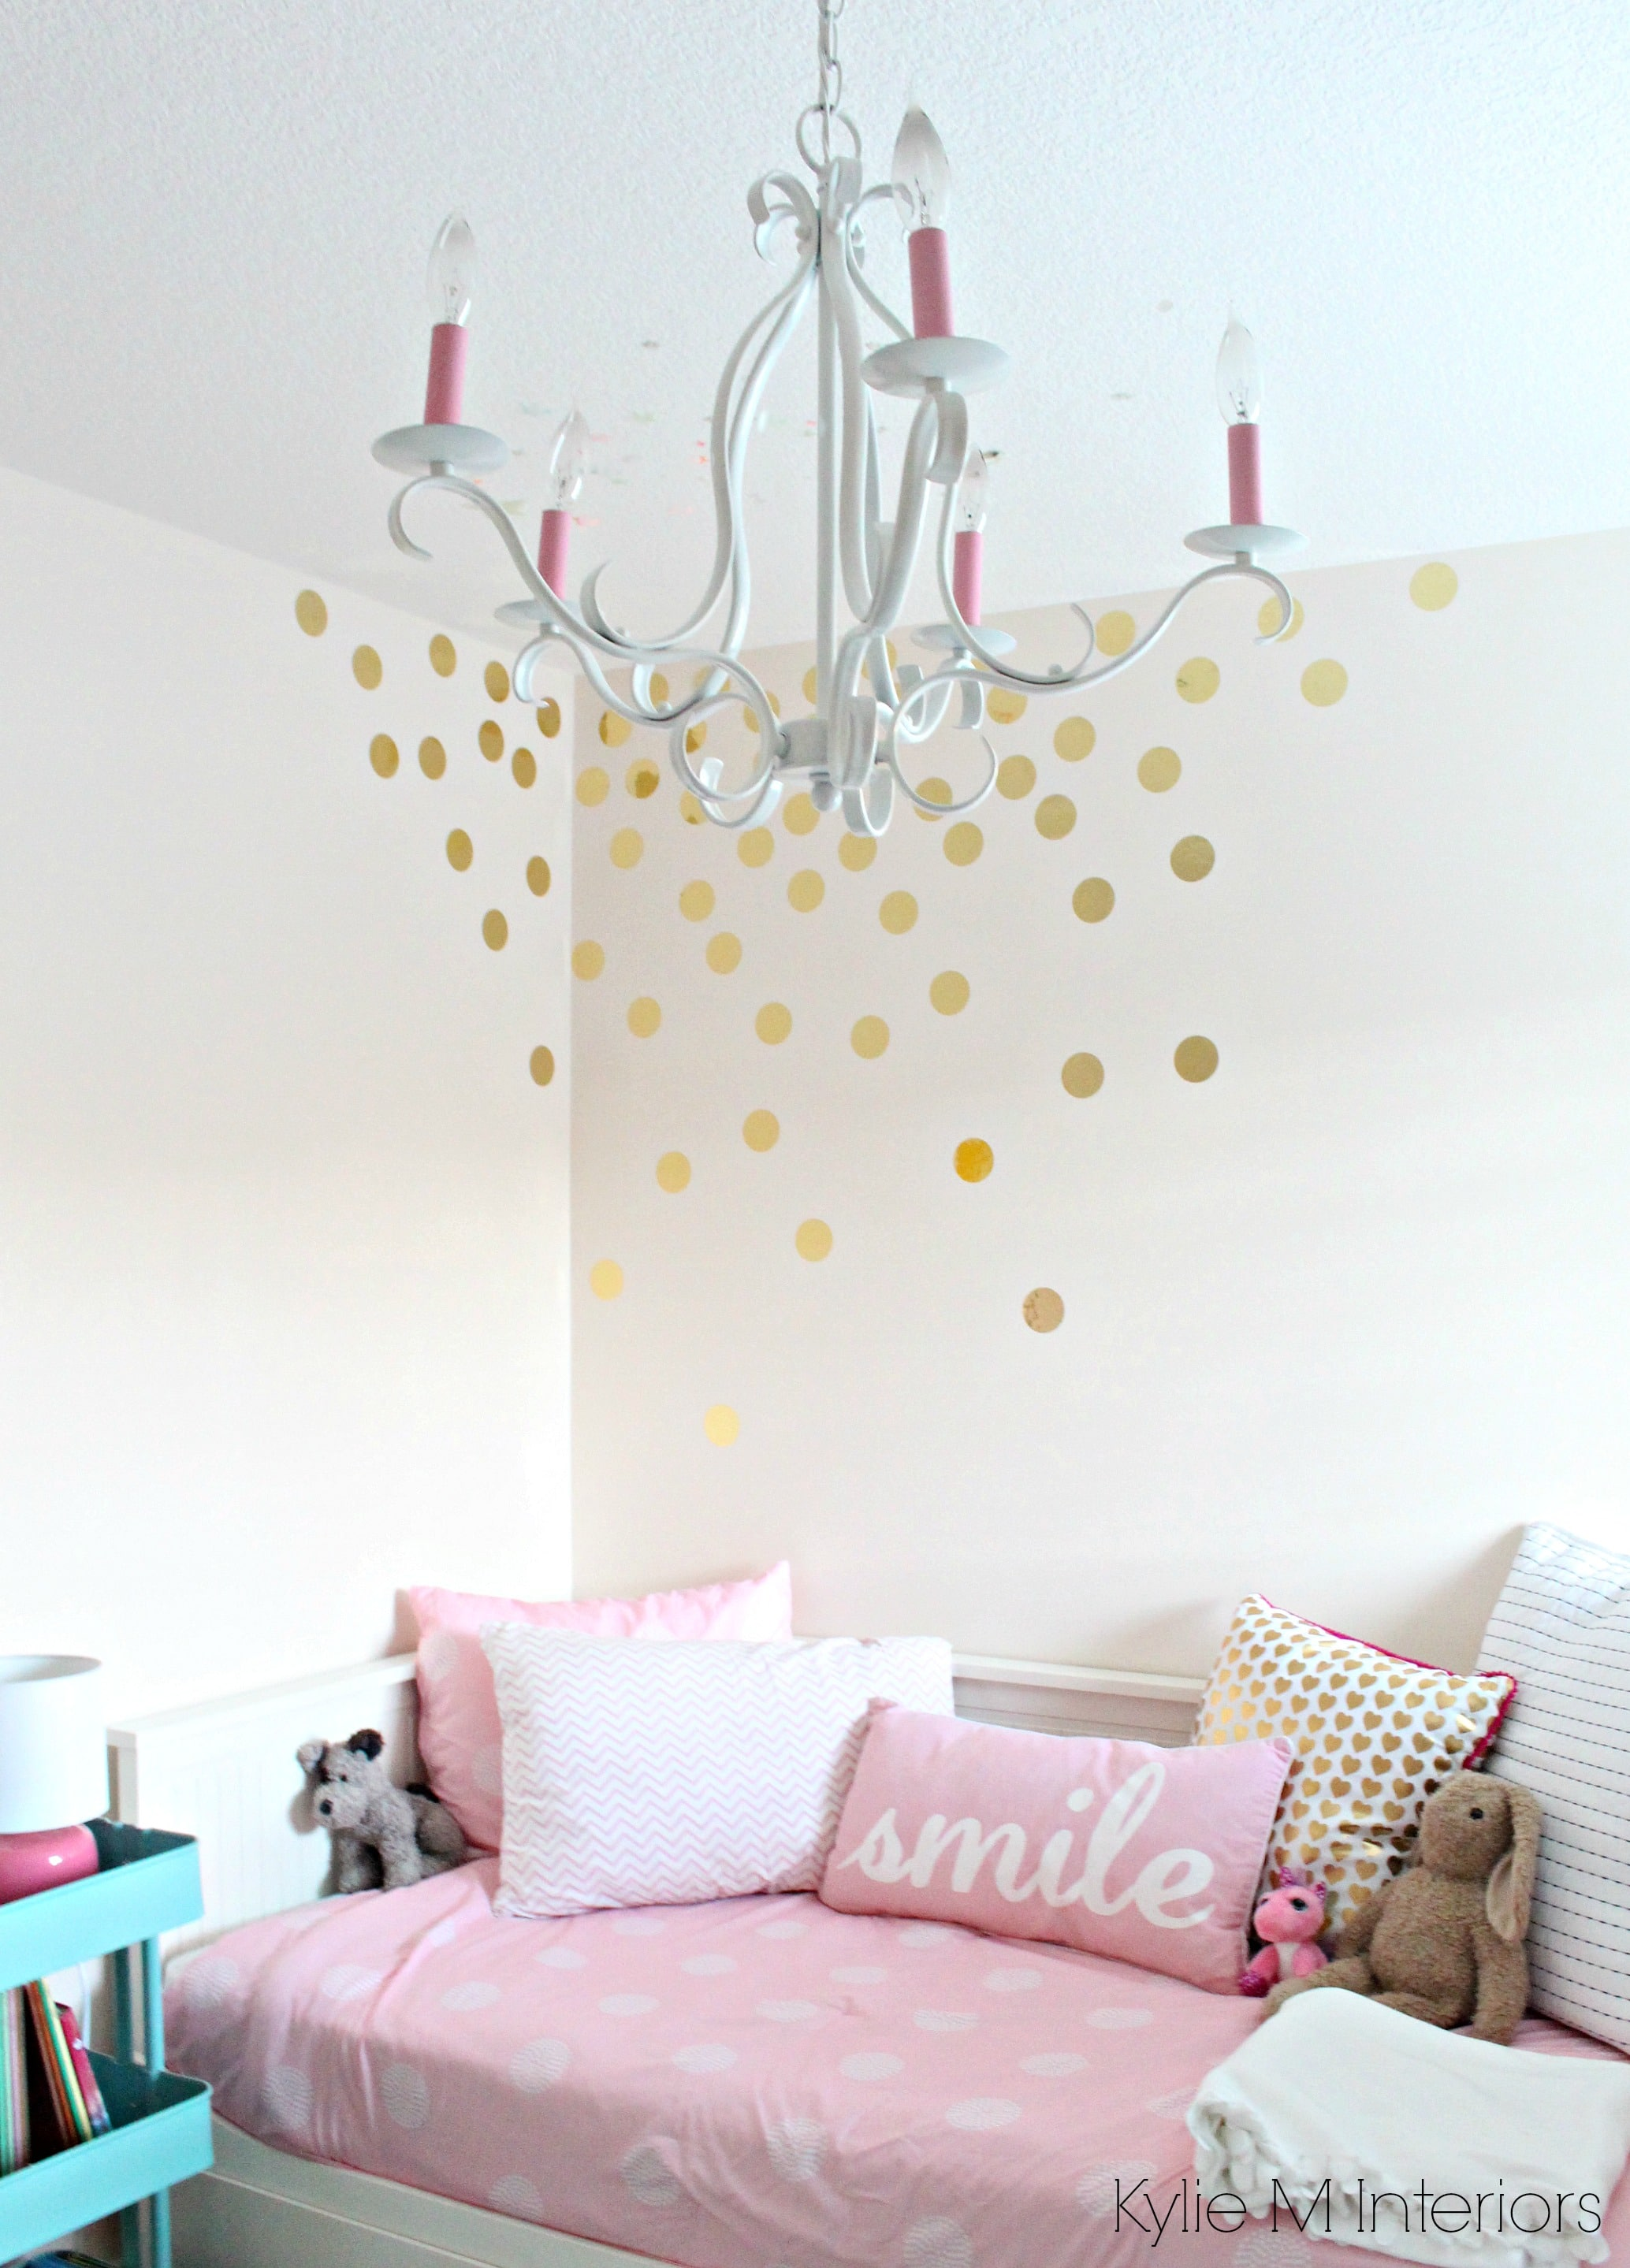 Little girls bedroom with pink bliss benjamin moore gold vinyl little girls bedroom with pink bliss benjamin moore gold vinyl raindrop decals on the wall with chandelier and decor cute for a nursery colour palette as arubaitofo Choice Image